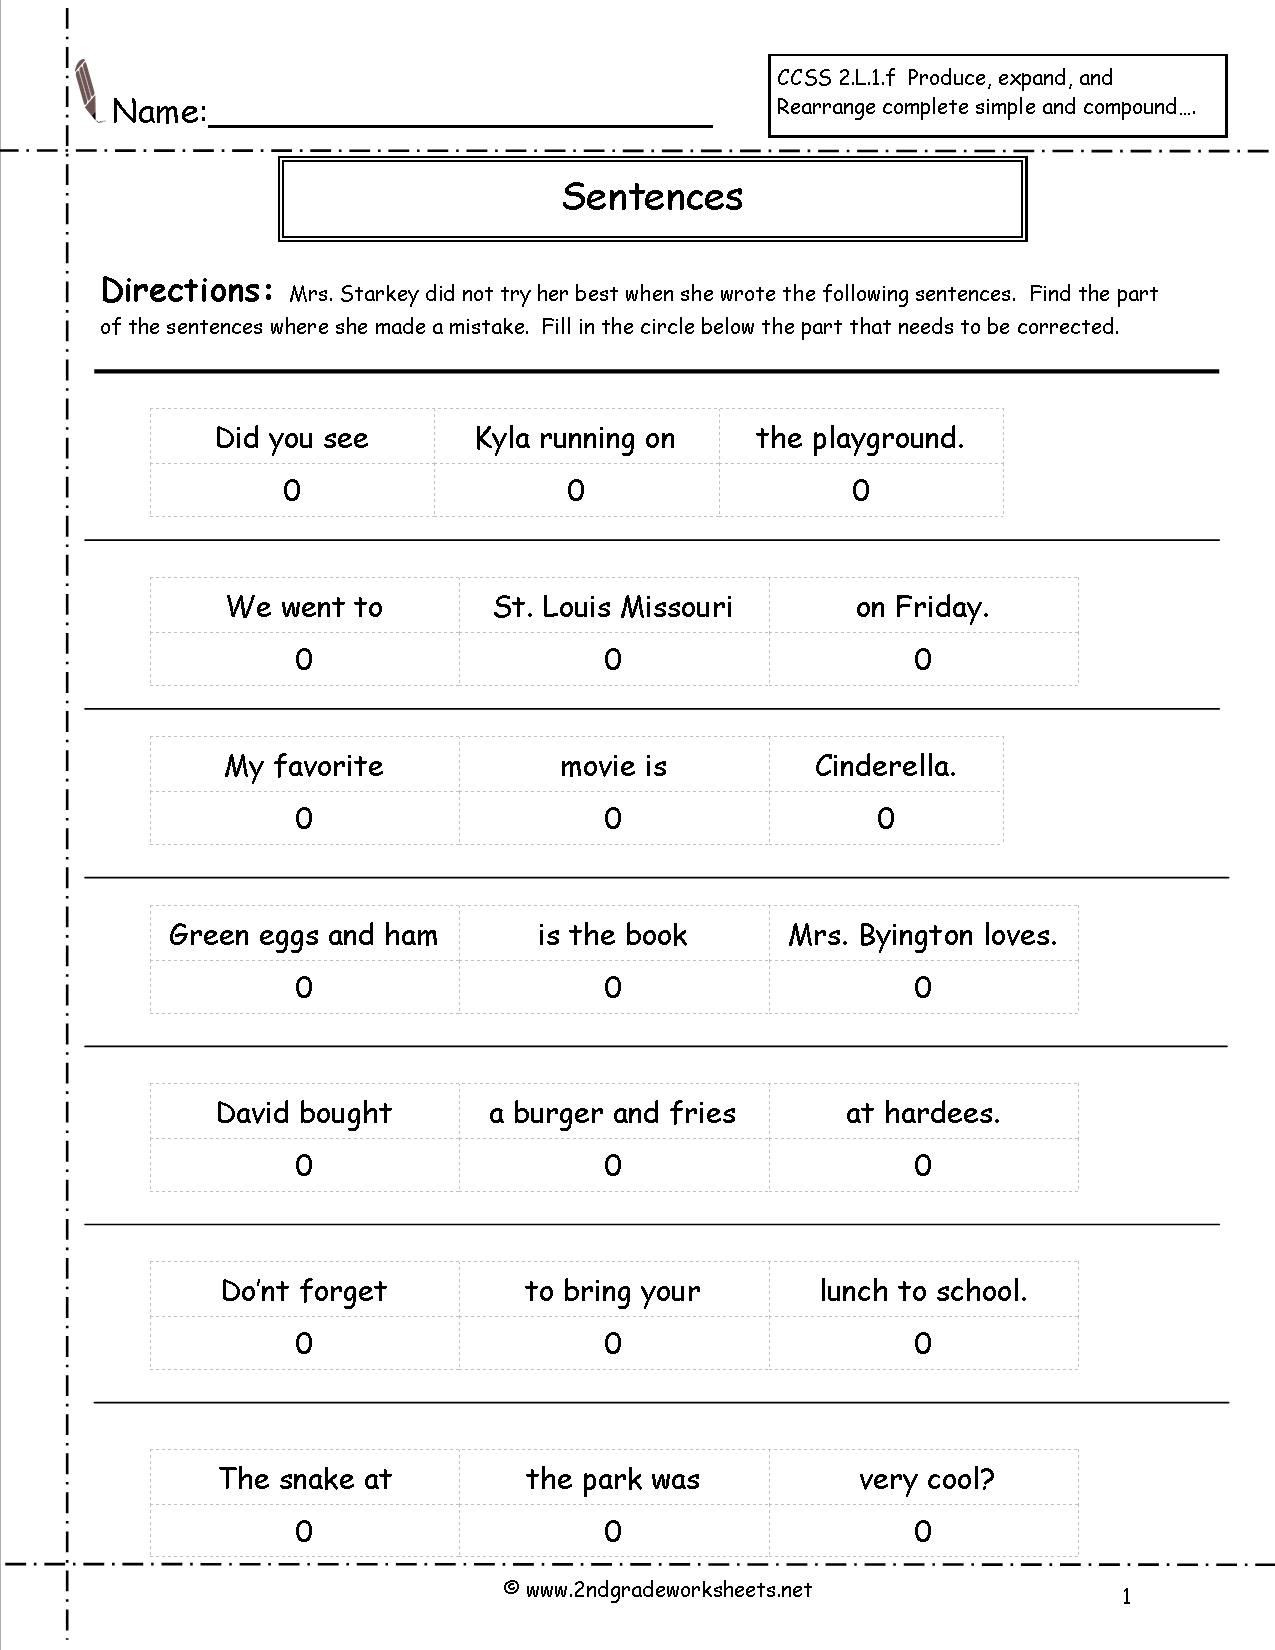 Complete Sentences Worksheets 3rd Grade Correct the Sentence Worksheet